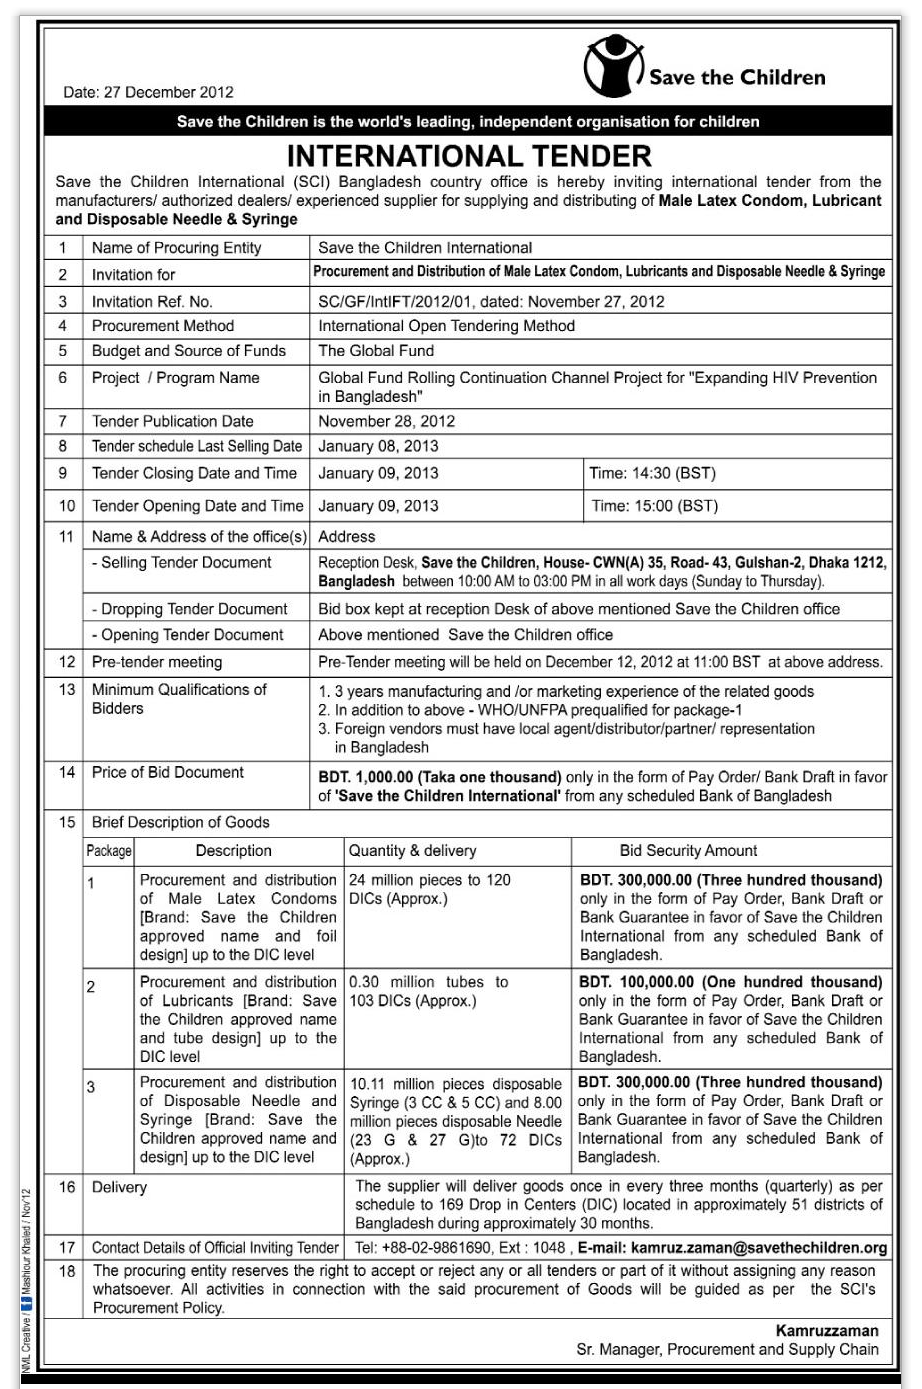 Save the Children Bangladesh Country Office ,International Tender